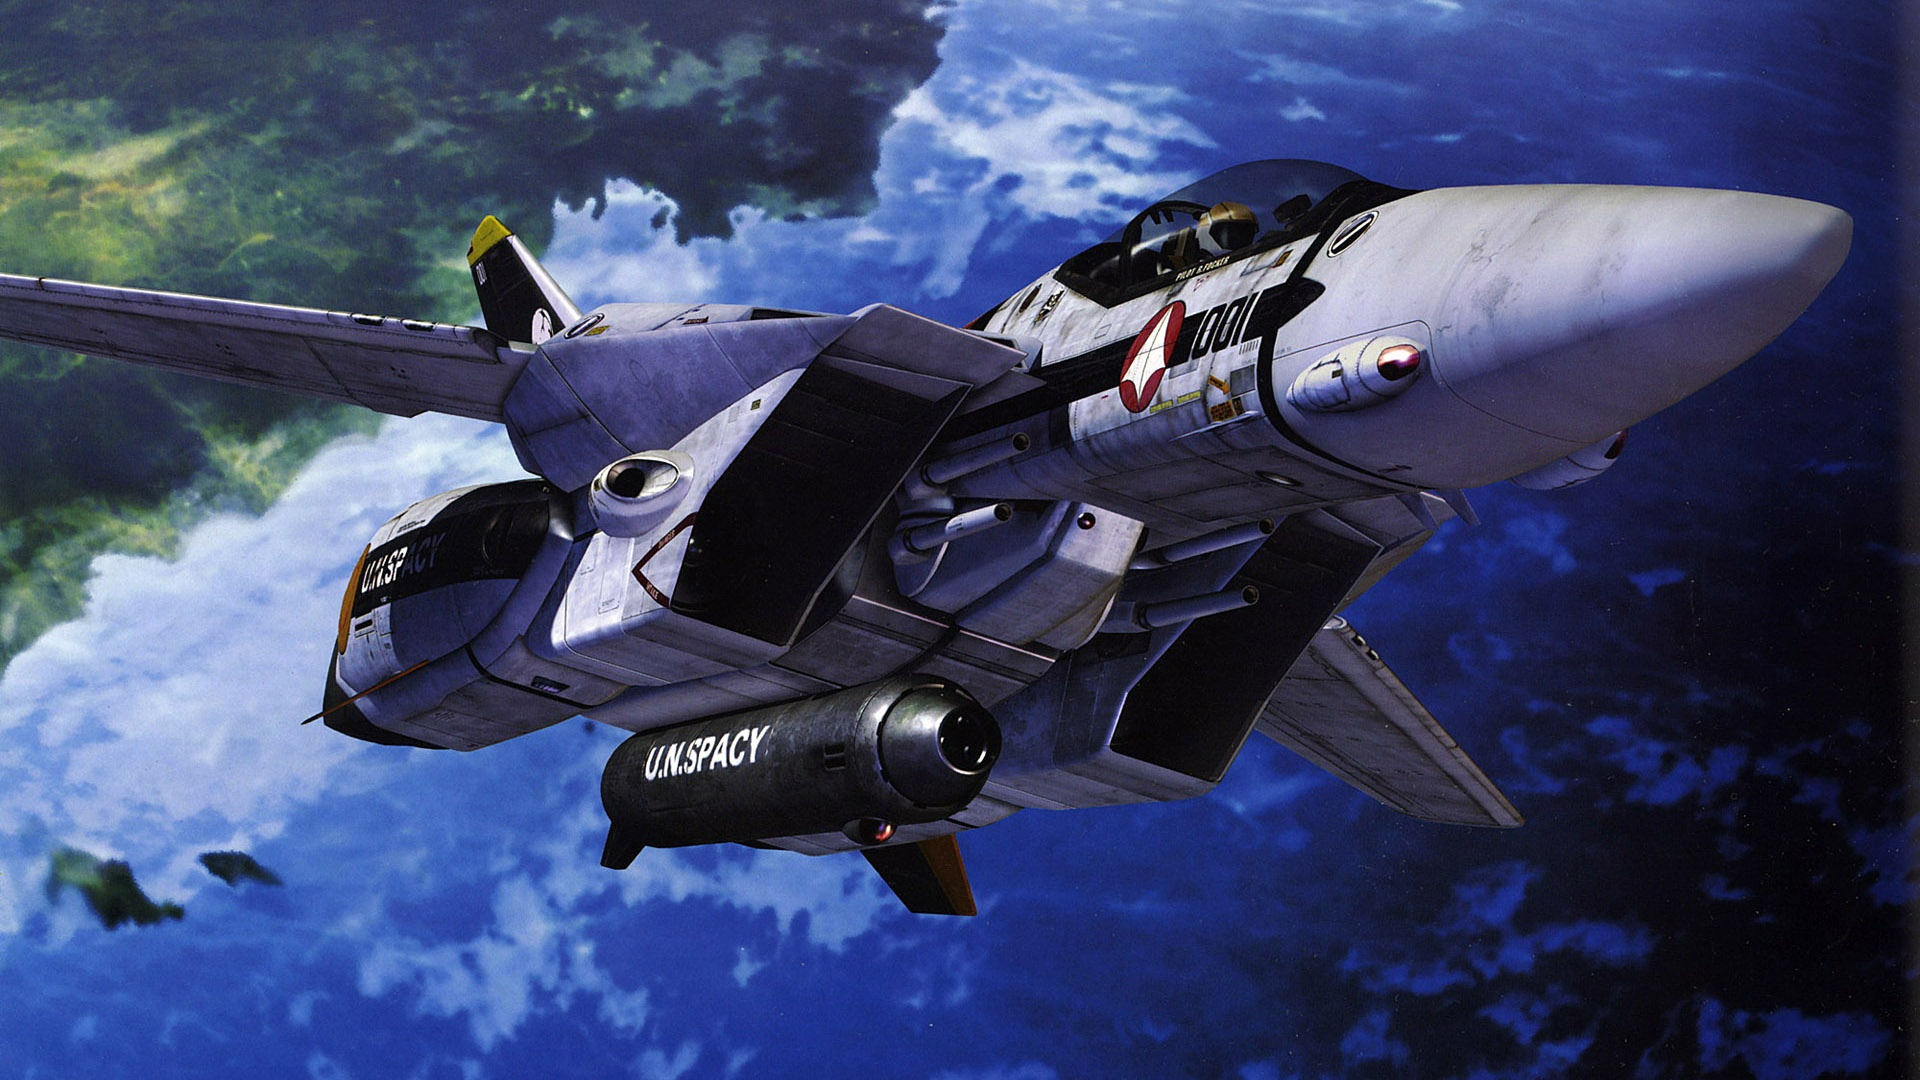 Aircraft Macross In Hd Crunch Com 542425 Wallpaper wallpaper